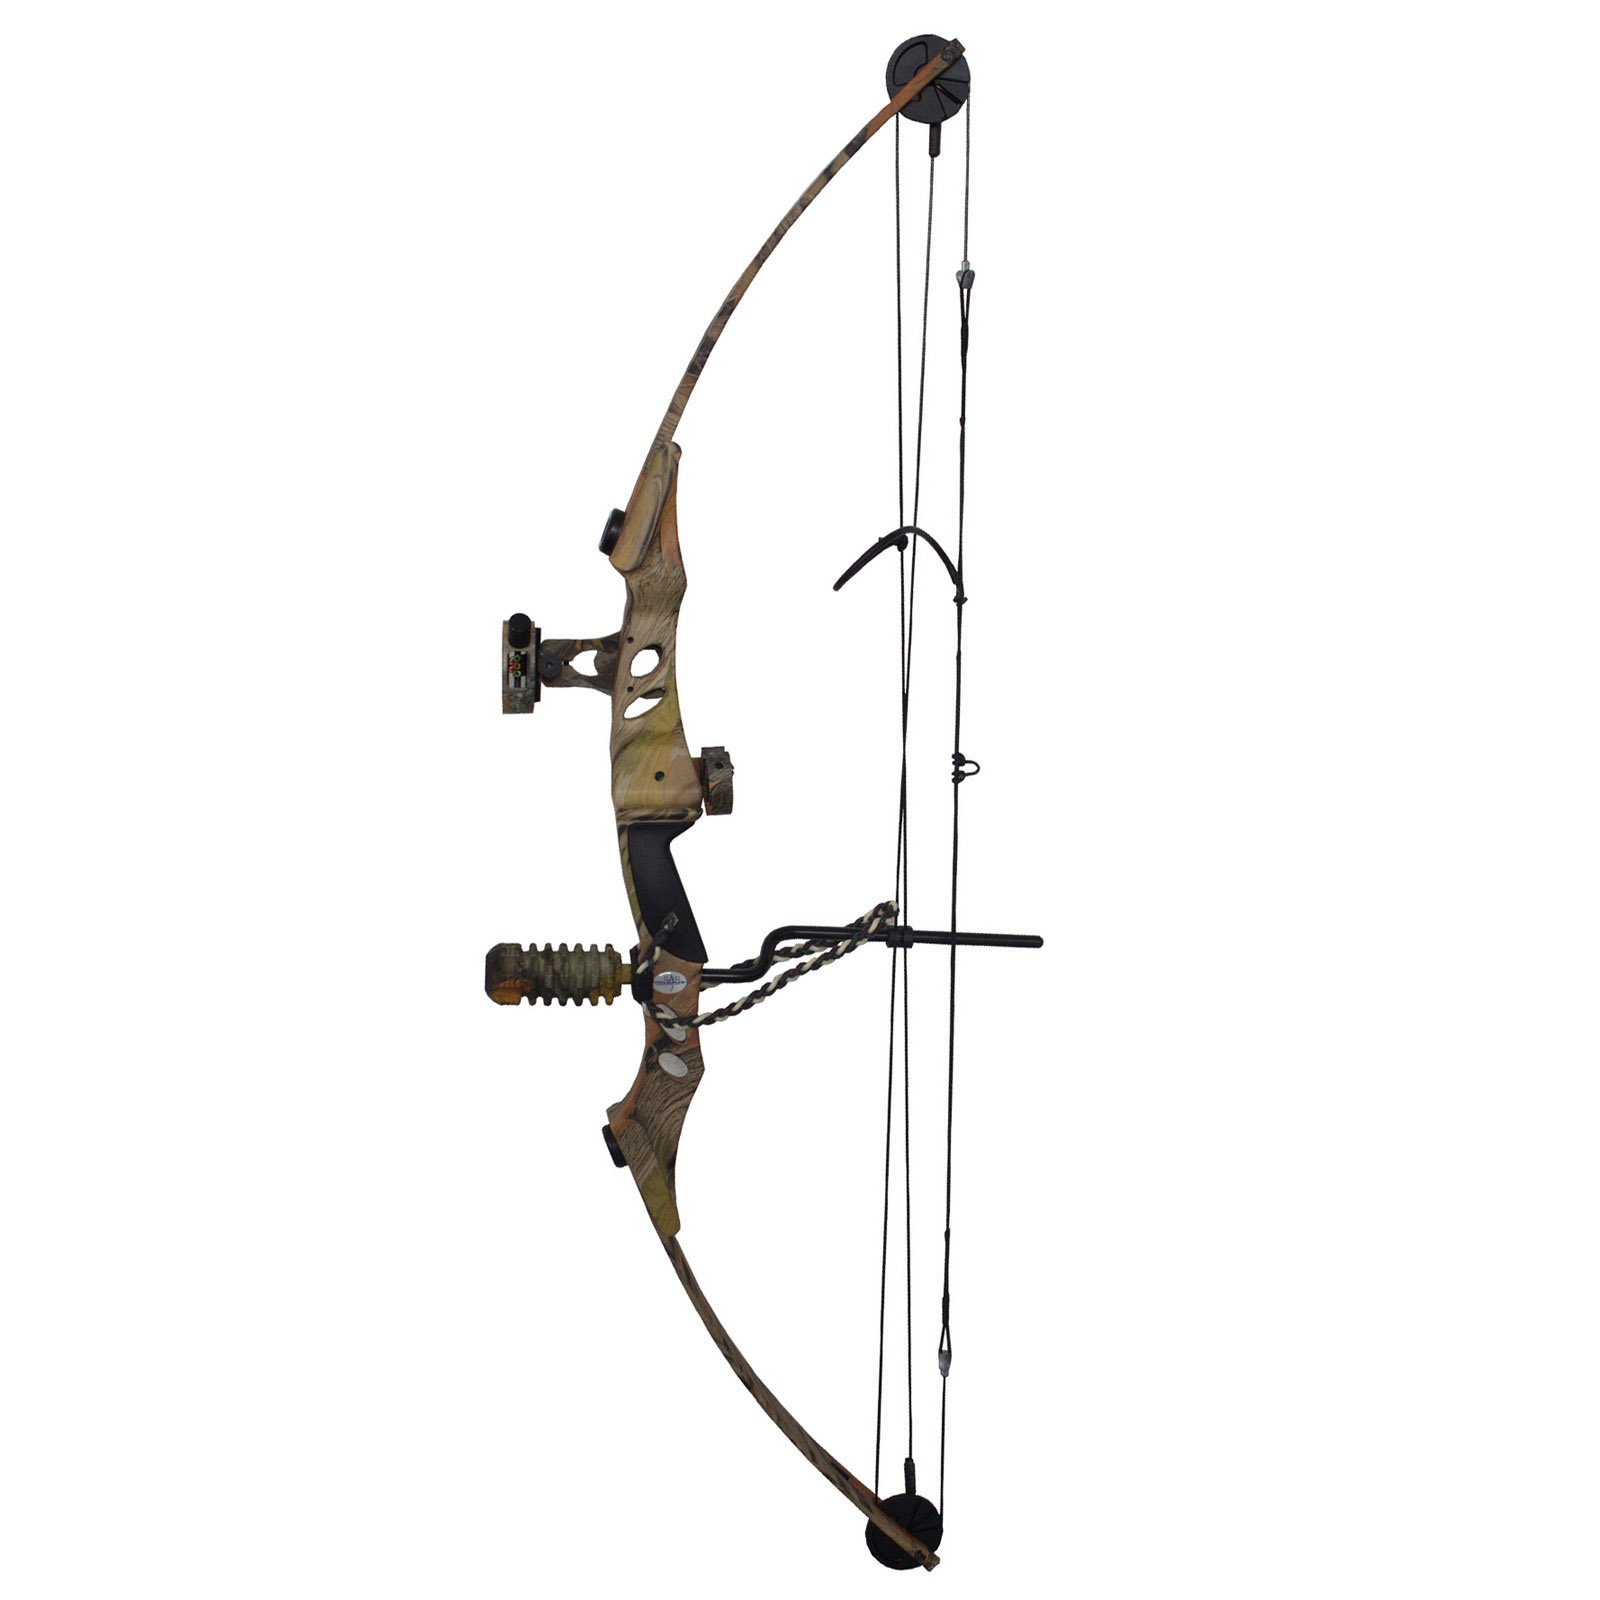 SAS Siege 55 lb Compound Bow Package (Camo with Accessory Package)